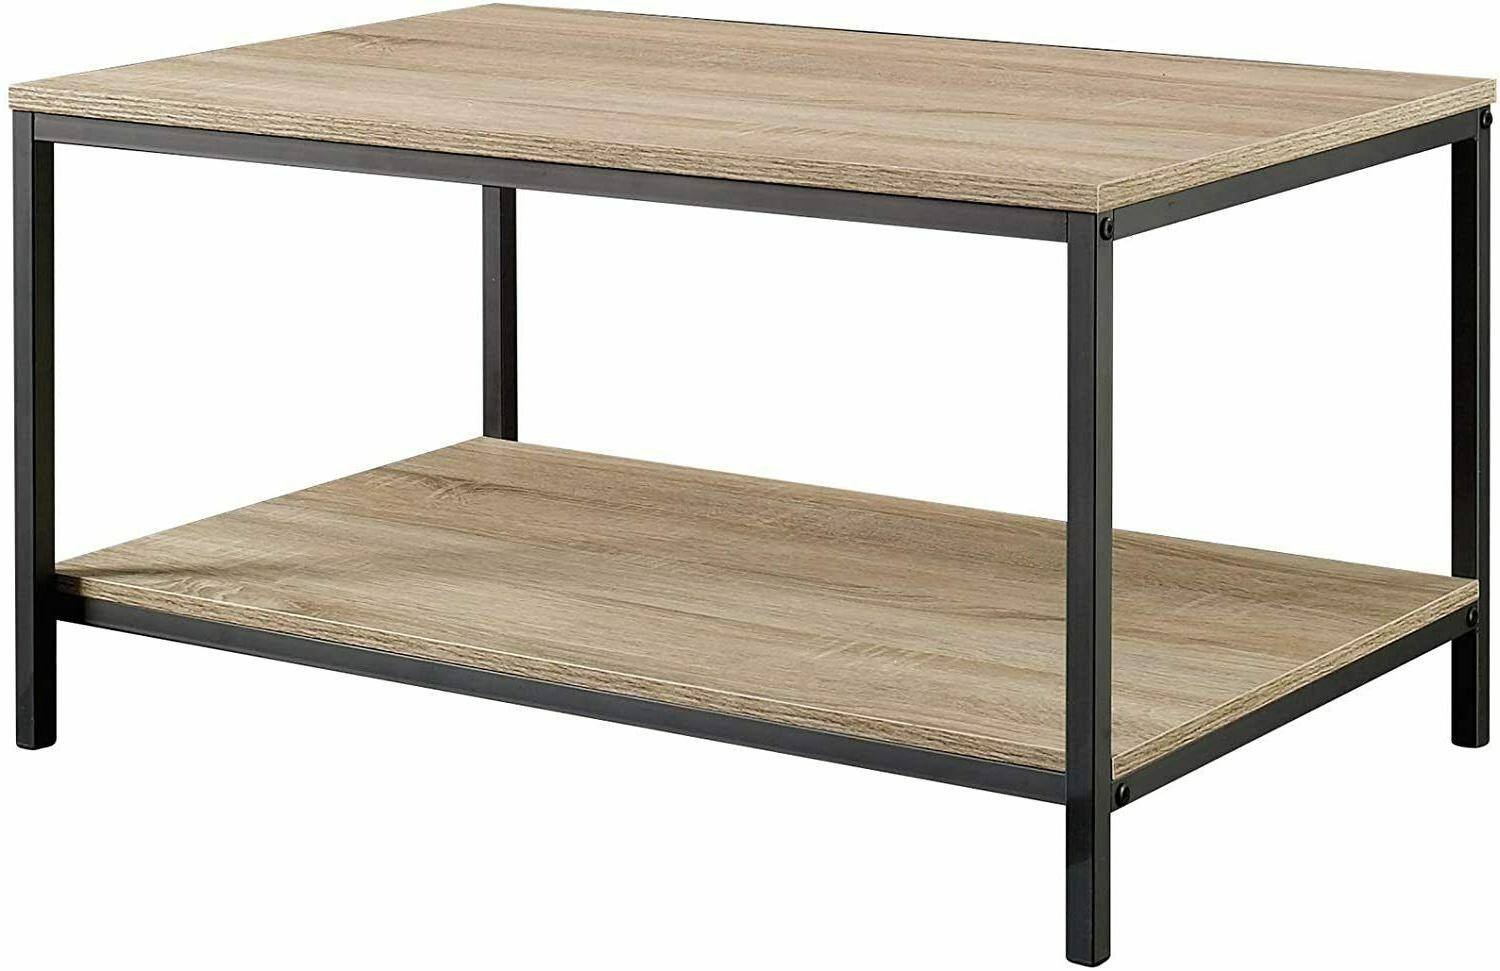 Oak Coffee Table Durable Black Metal Frame North Avenue Char